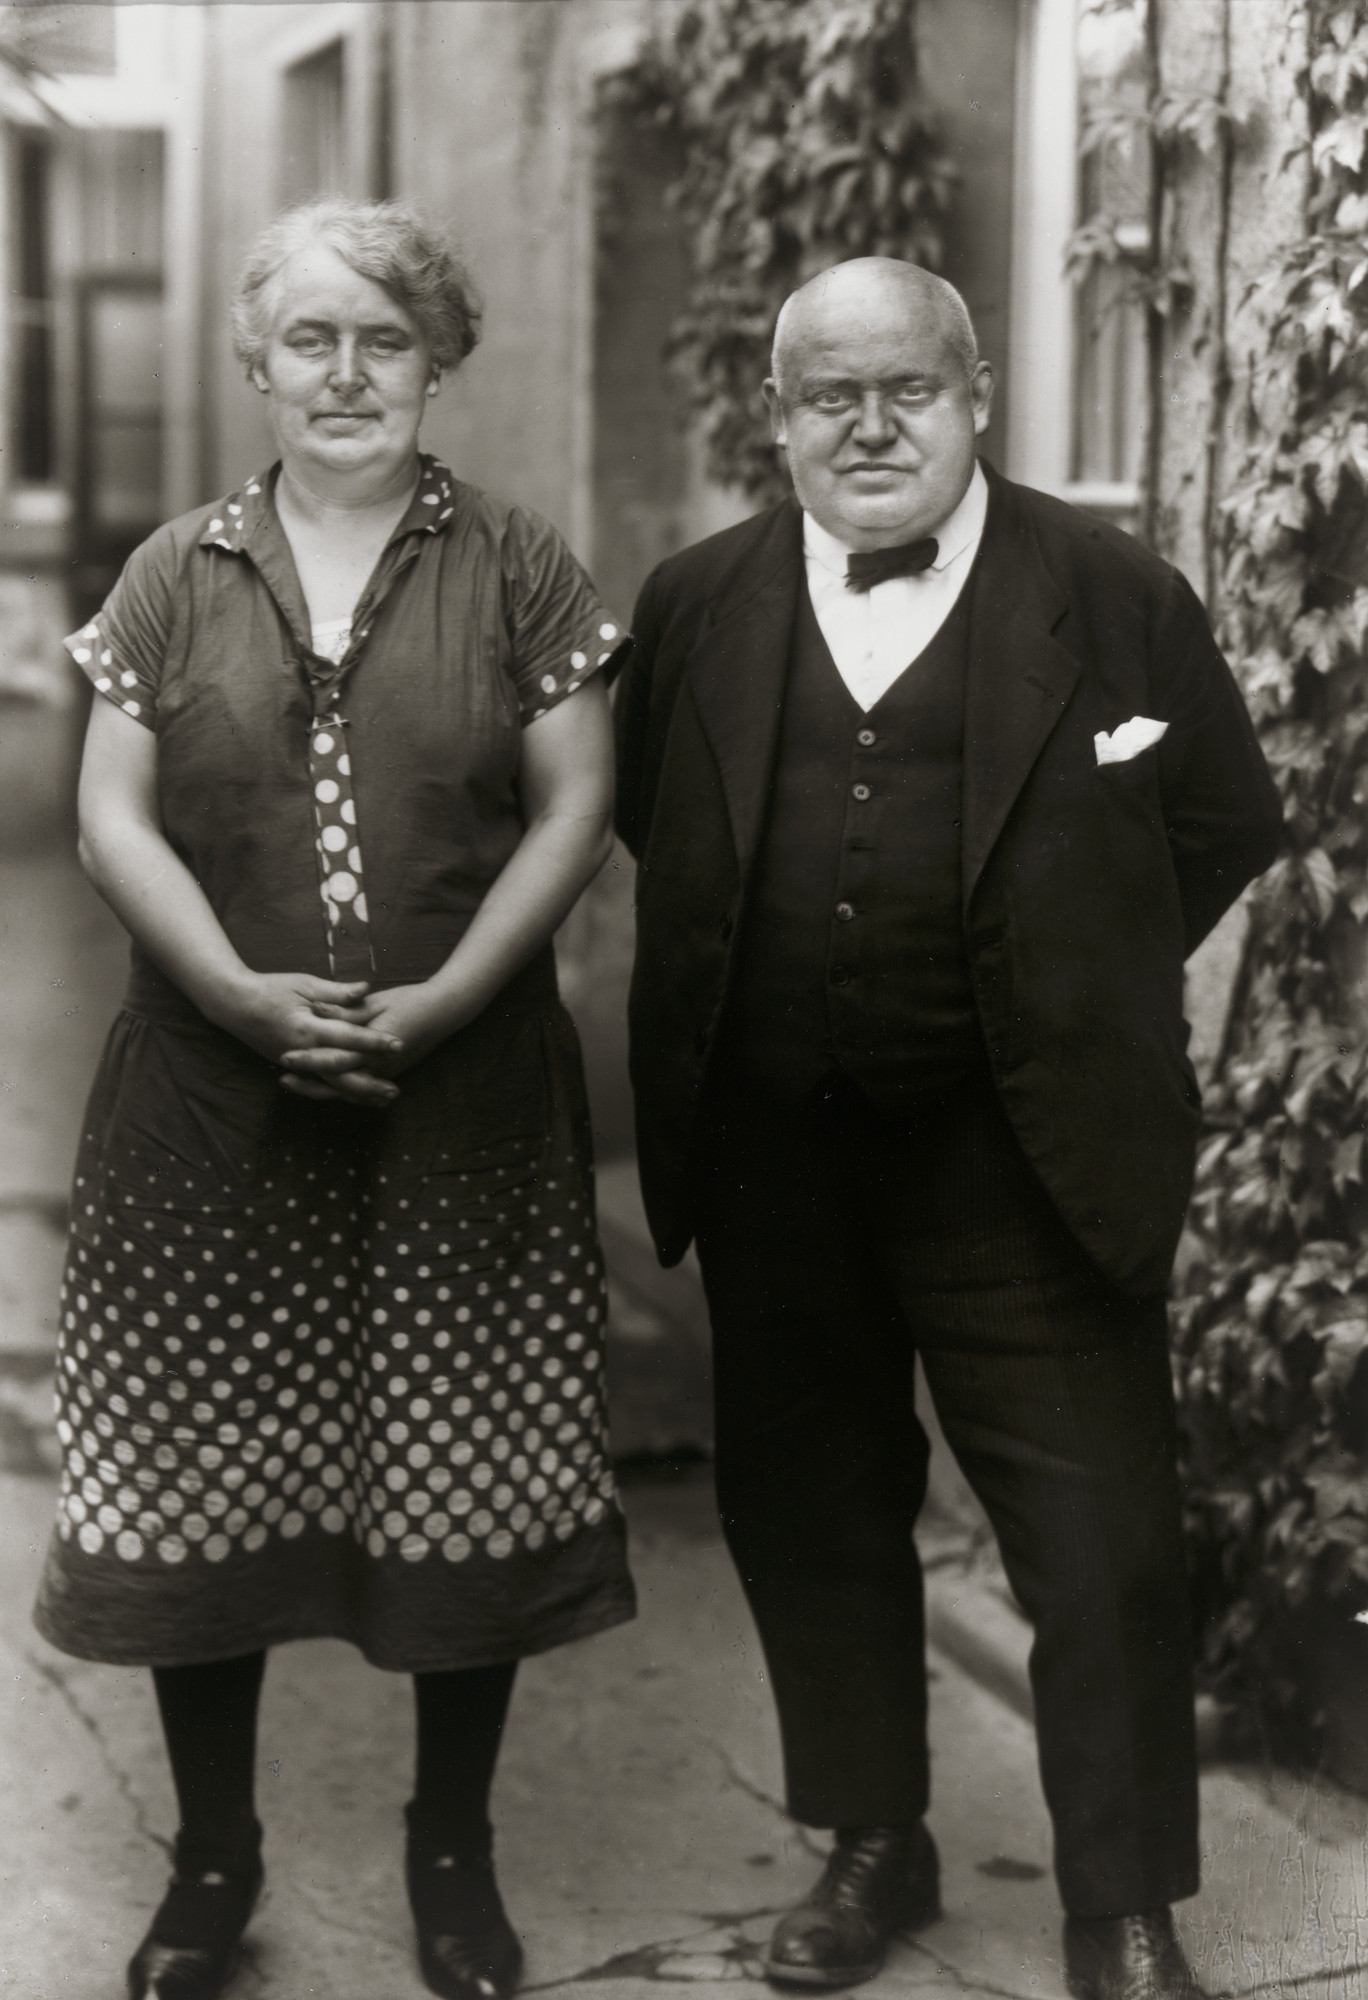 August Sander. The Innkeeper and his Wife. 1930